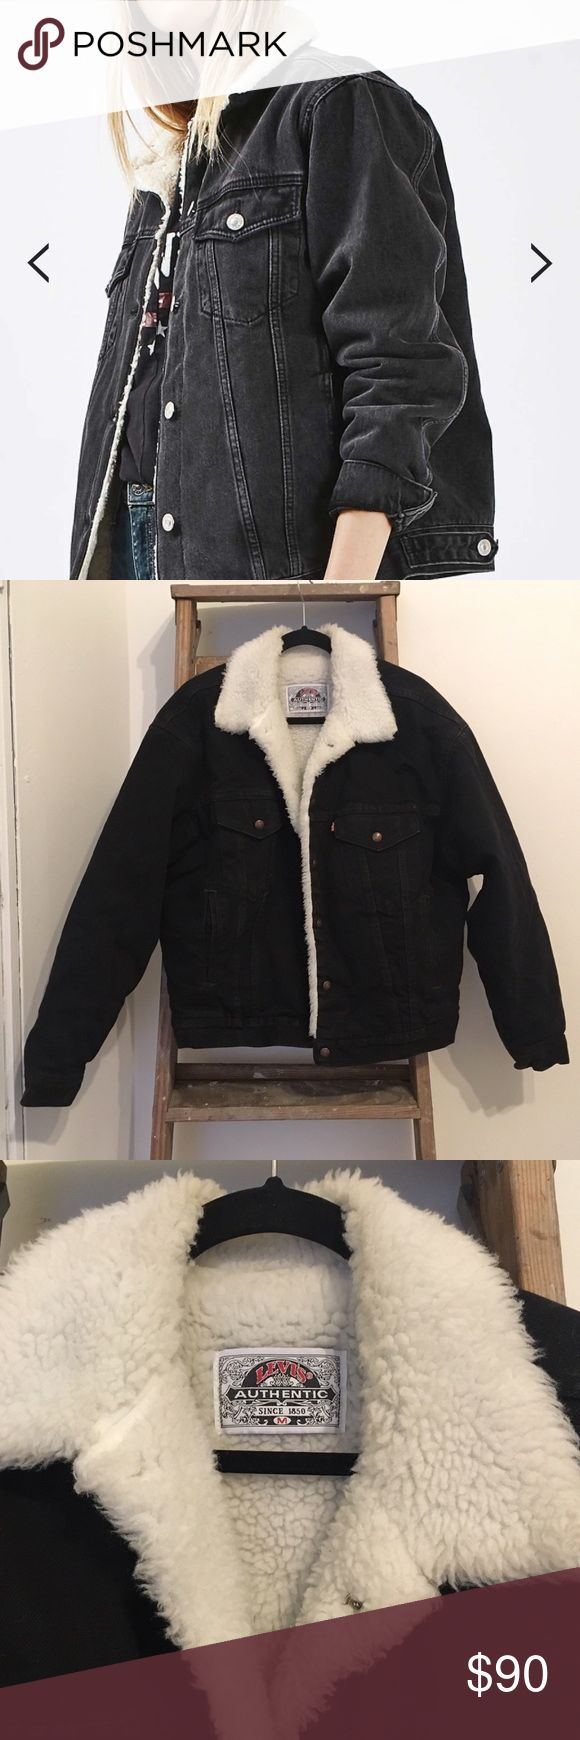 Levi's Black Sherpa Denim Jacket Levi's black denim Sherpa jacket. Shearling lining. Men's size M, fits women's size L or women's M oversized. Reposhed (I've never worn it). Perfect condition. Levi's Jackets & Coats Jean Jackets